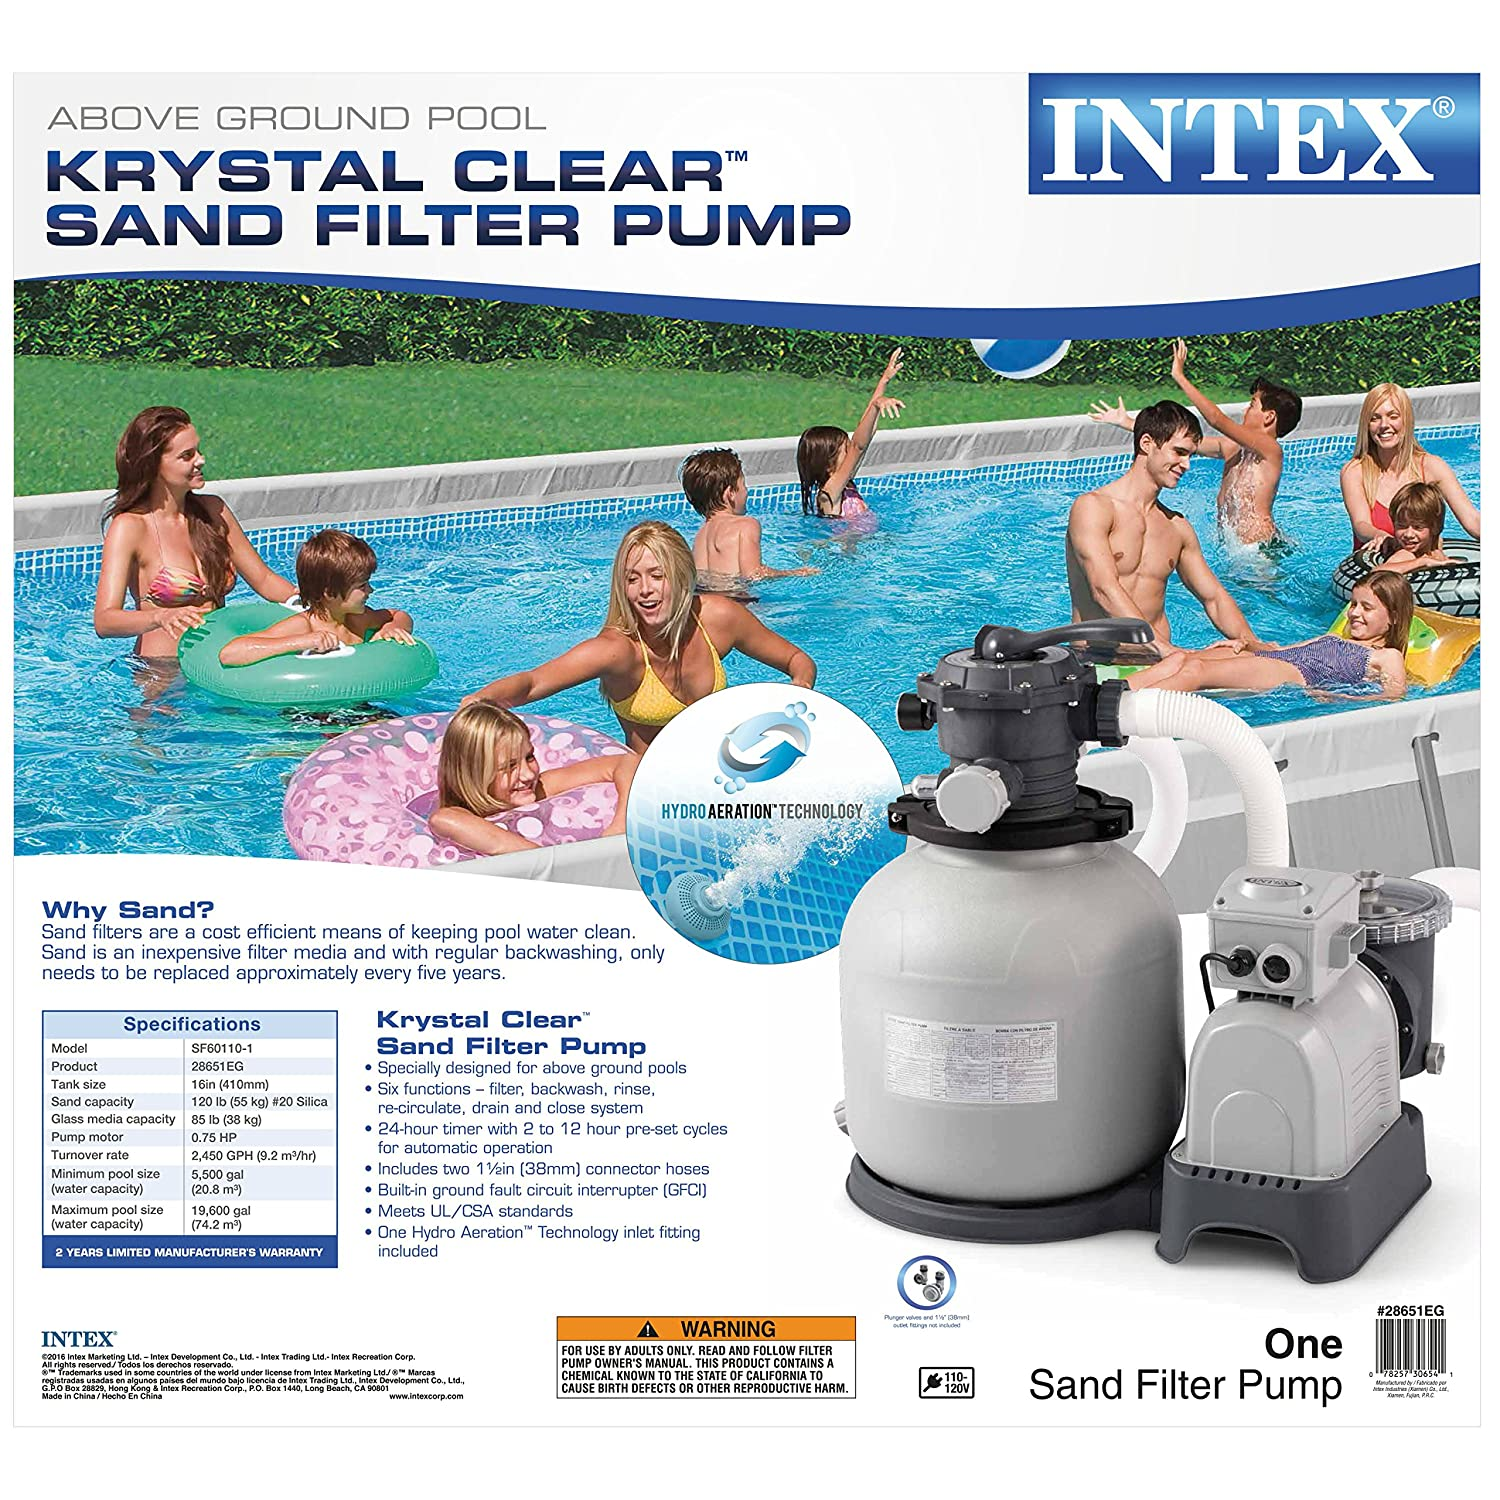 Amazon.com : Intex Krystal Clear Sand Filter Pump for Above Ground Pools,  12-inch, 110-120V with GFCI : Swimming Pool Sand Filters : Garden & Outdoor